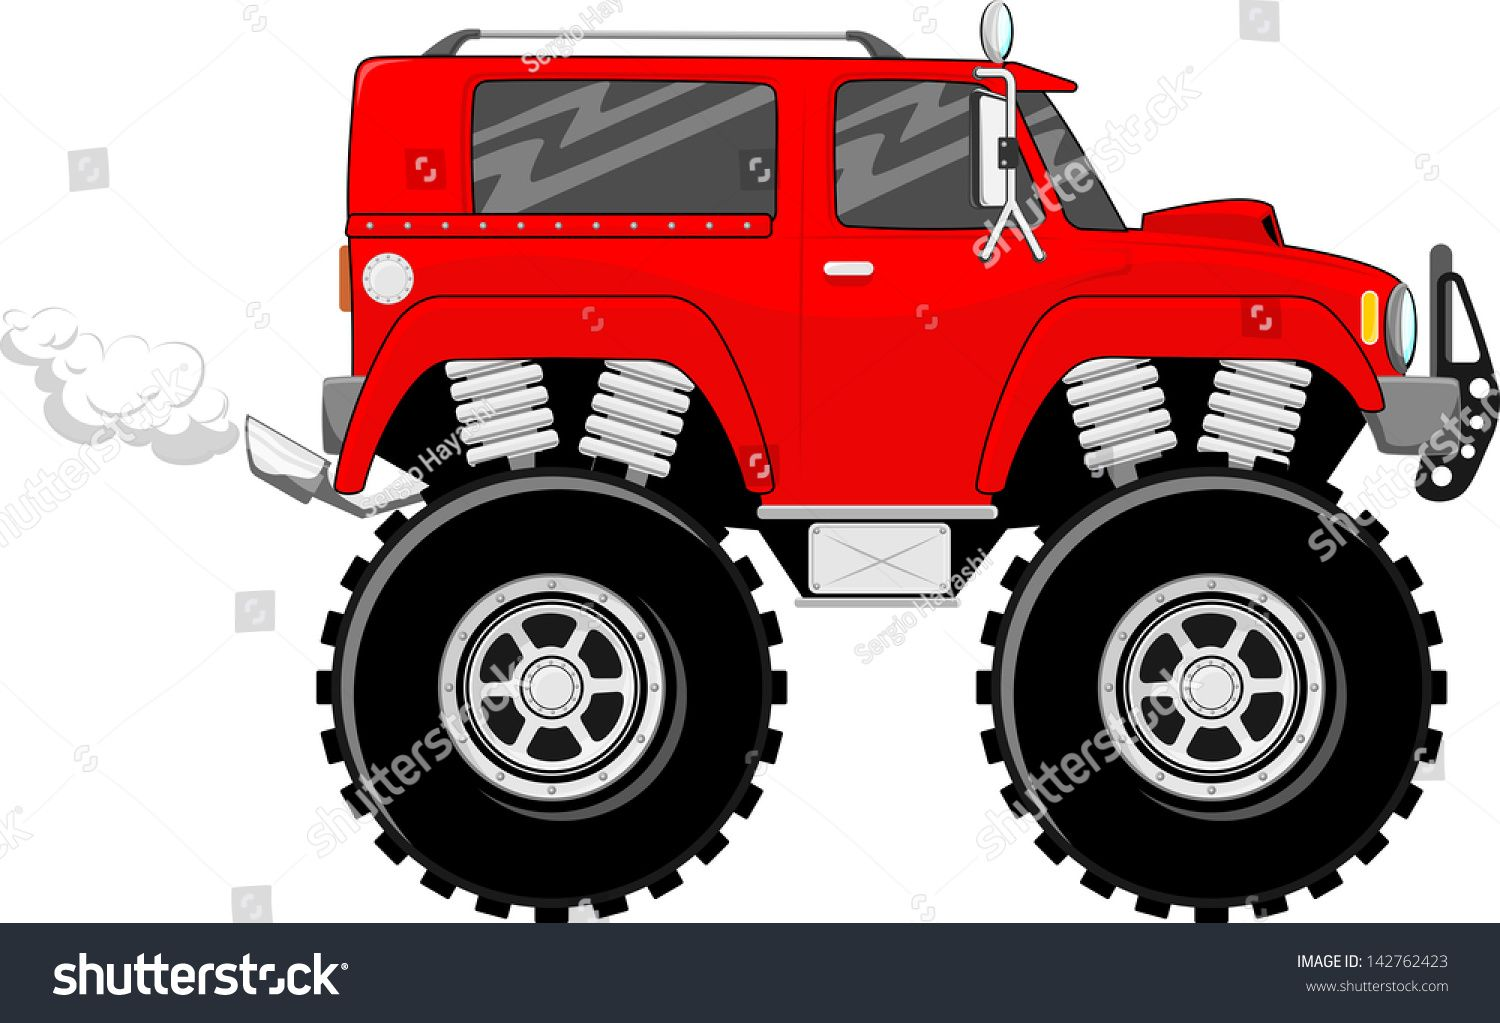 illustration of big wheels red monstertruck cartoon isolated on white background #Ad , #AFFILIATE, #wheels#red#illustration#big